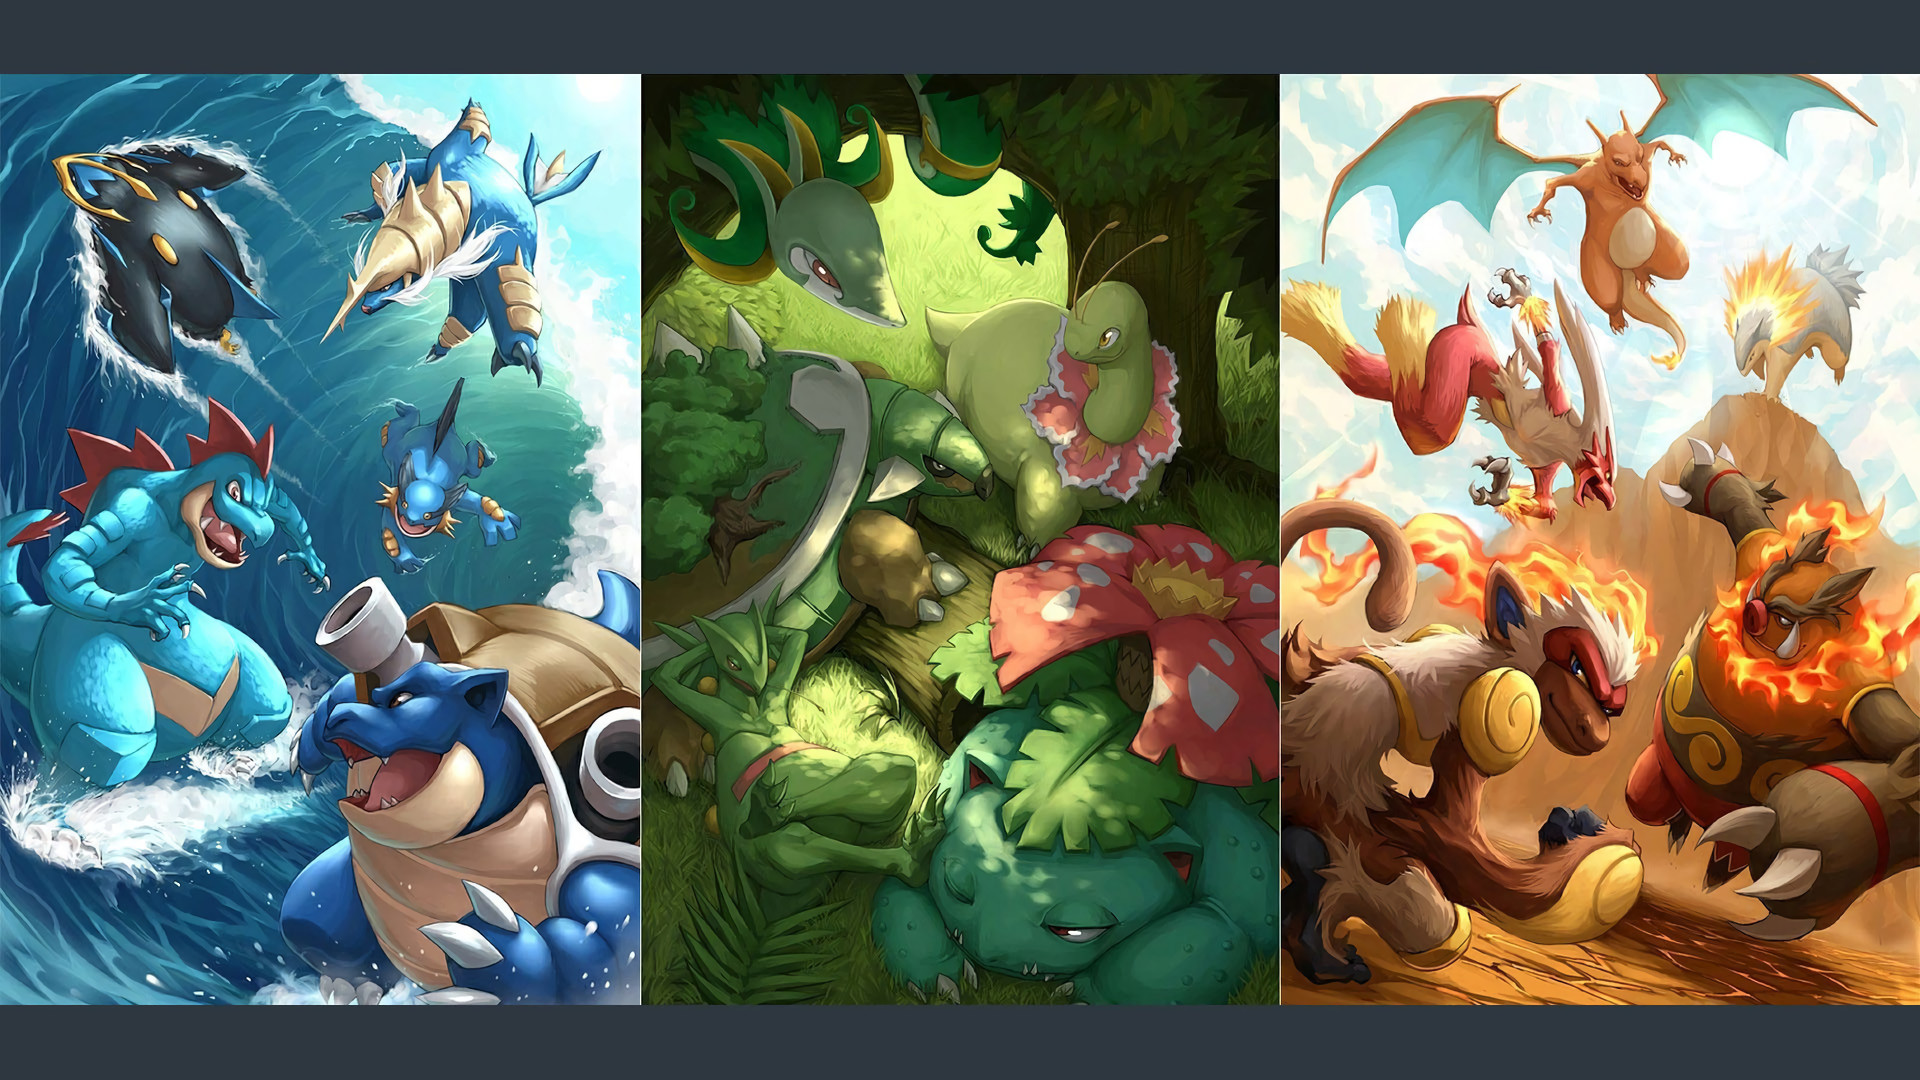 1920x1080 ... Popular Grass Pokemon Wallpapers Collection, Grass Pokemon Wallpapers -   px, 07.06.15